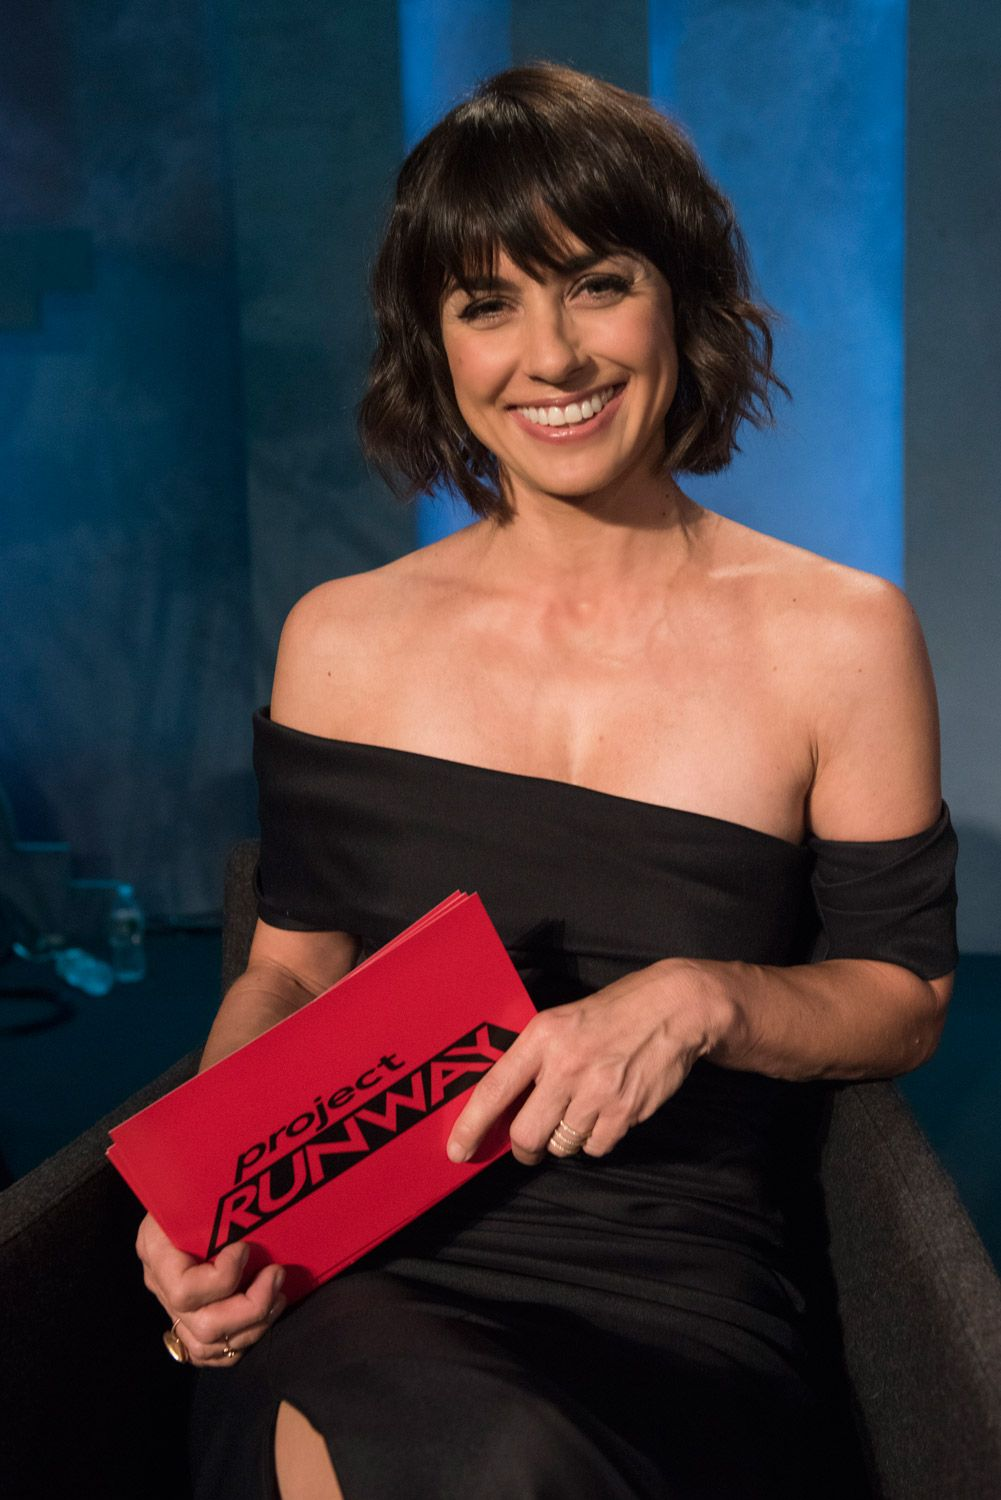 Constance Zimmer good morning miami